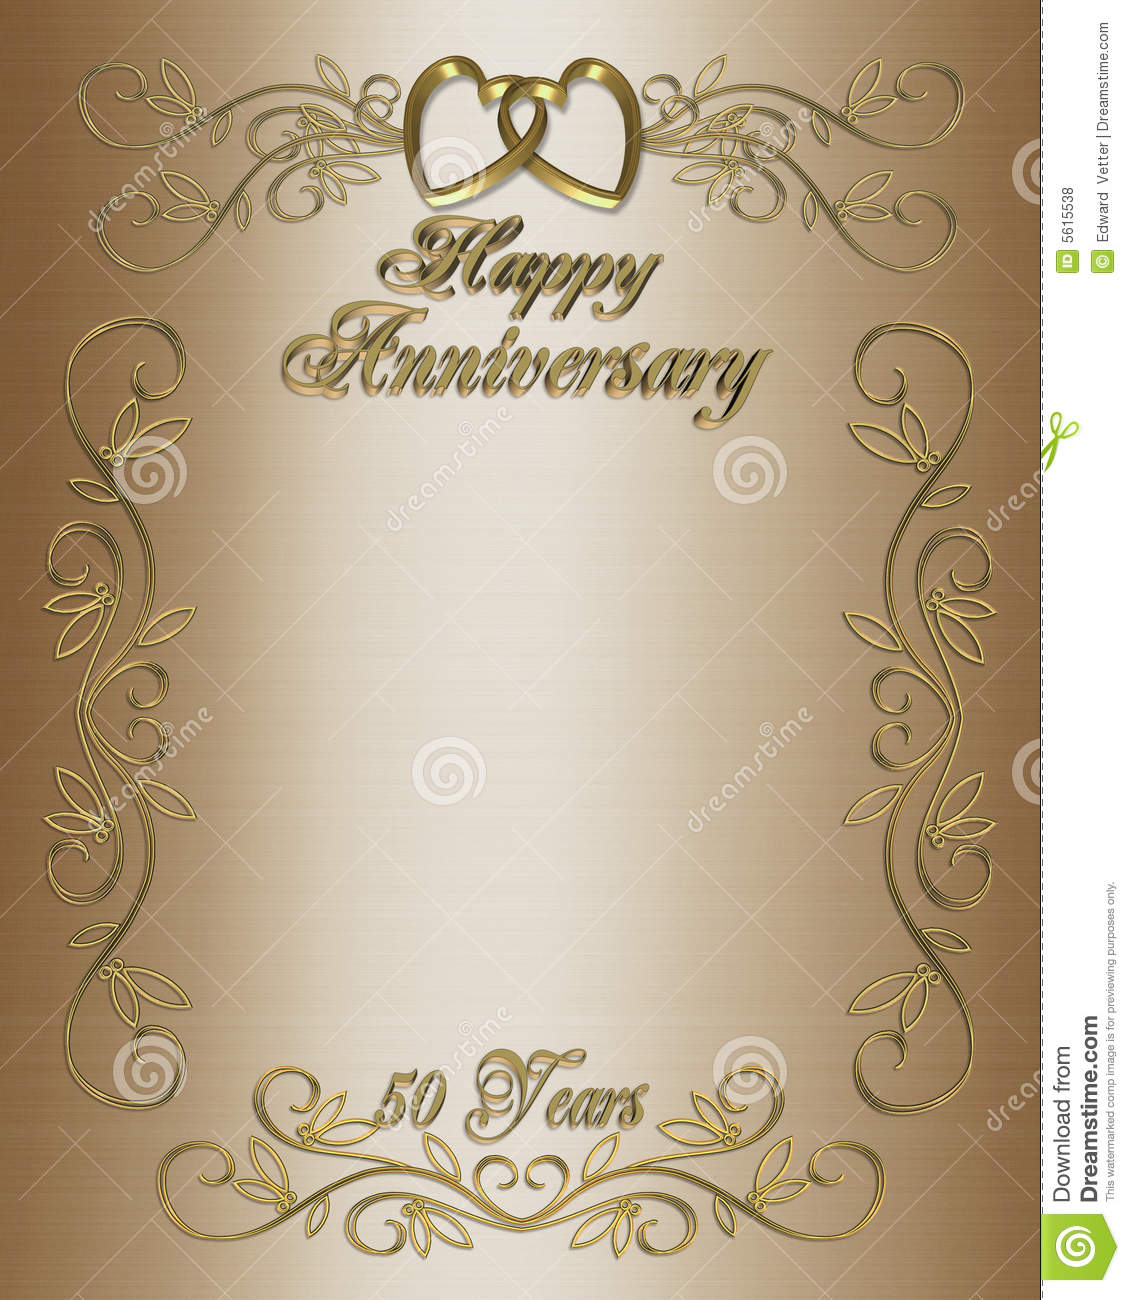 50th Anniversary Invitation Border Royalty Free Stock Photos - Image ...